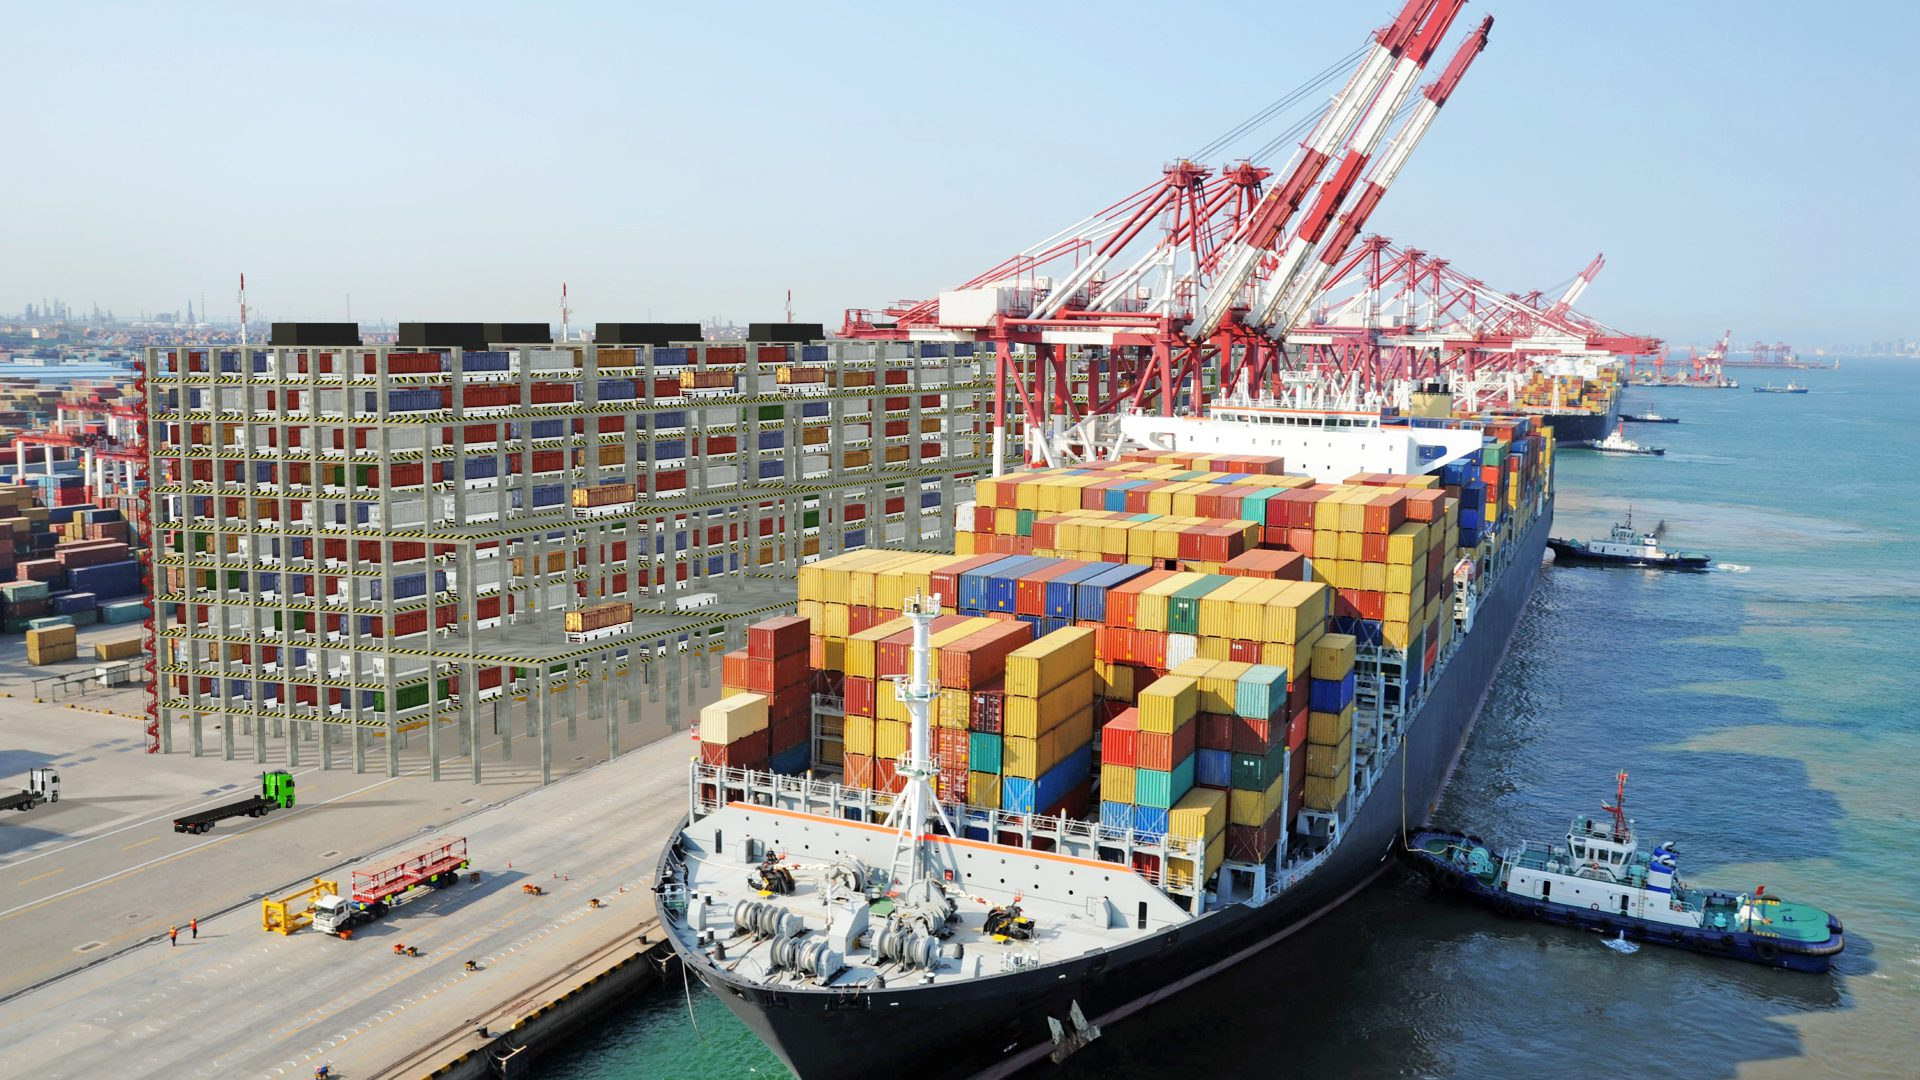 IAI Introduces an Innovative Robotic Shipping Container Storage